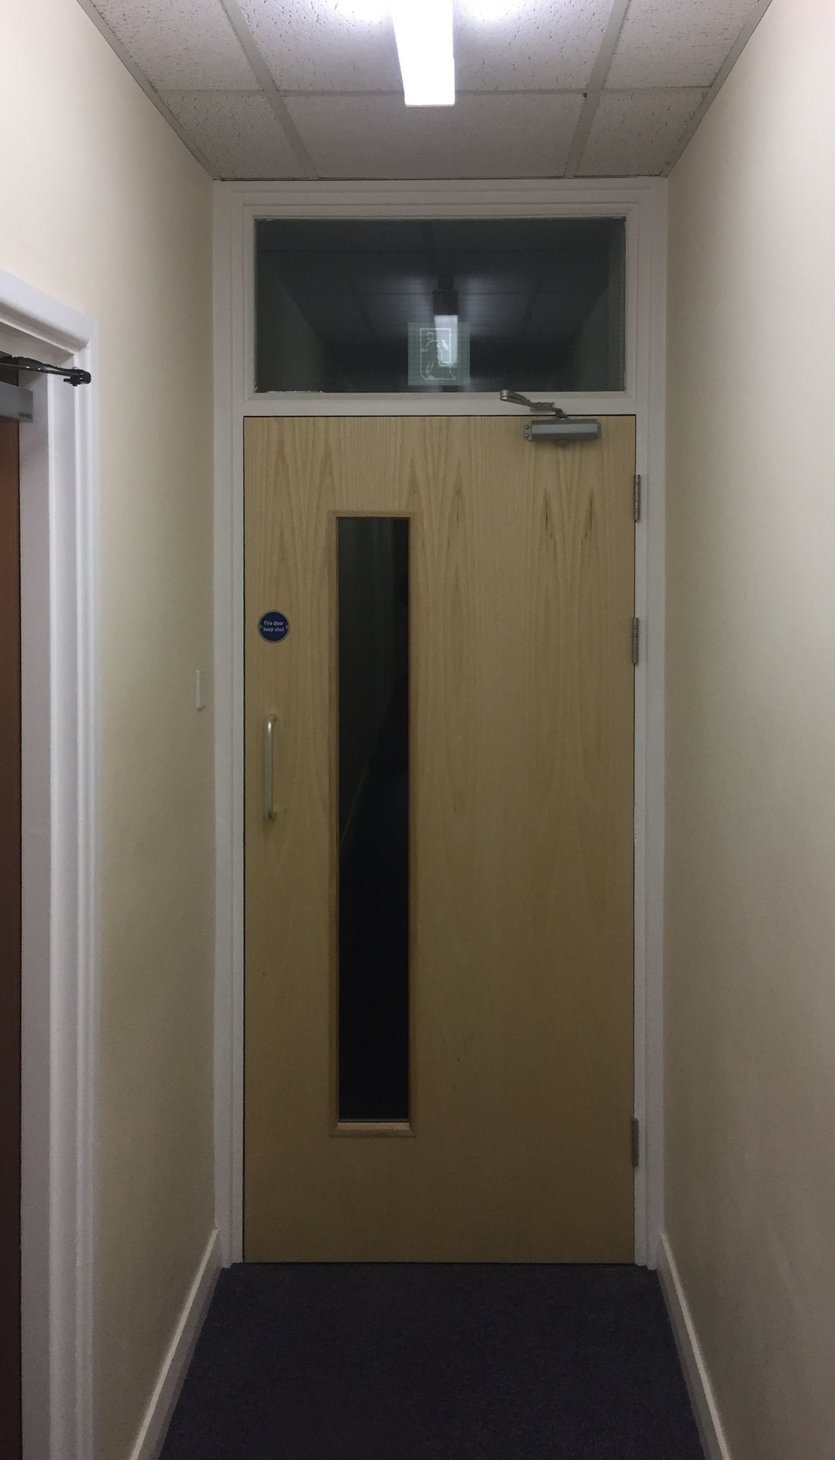 All doors installed to current regulations, improving the safety aspect of the door and the aesthetic value of the doors modernized the corridor. in North Devon